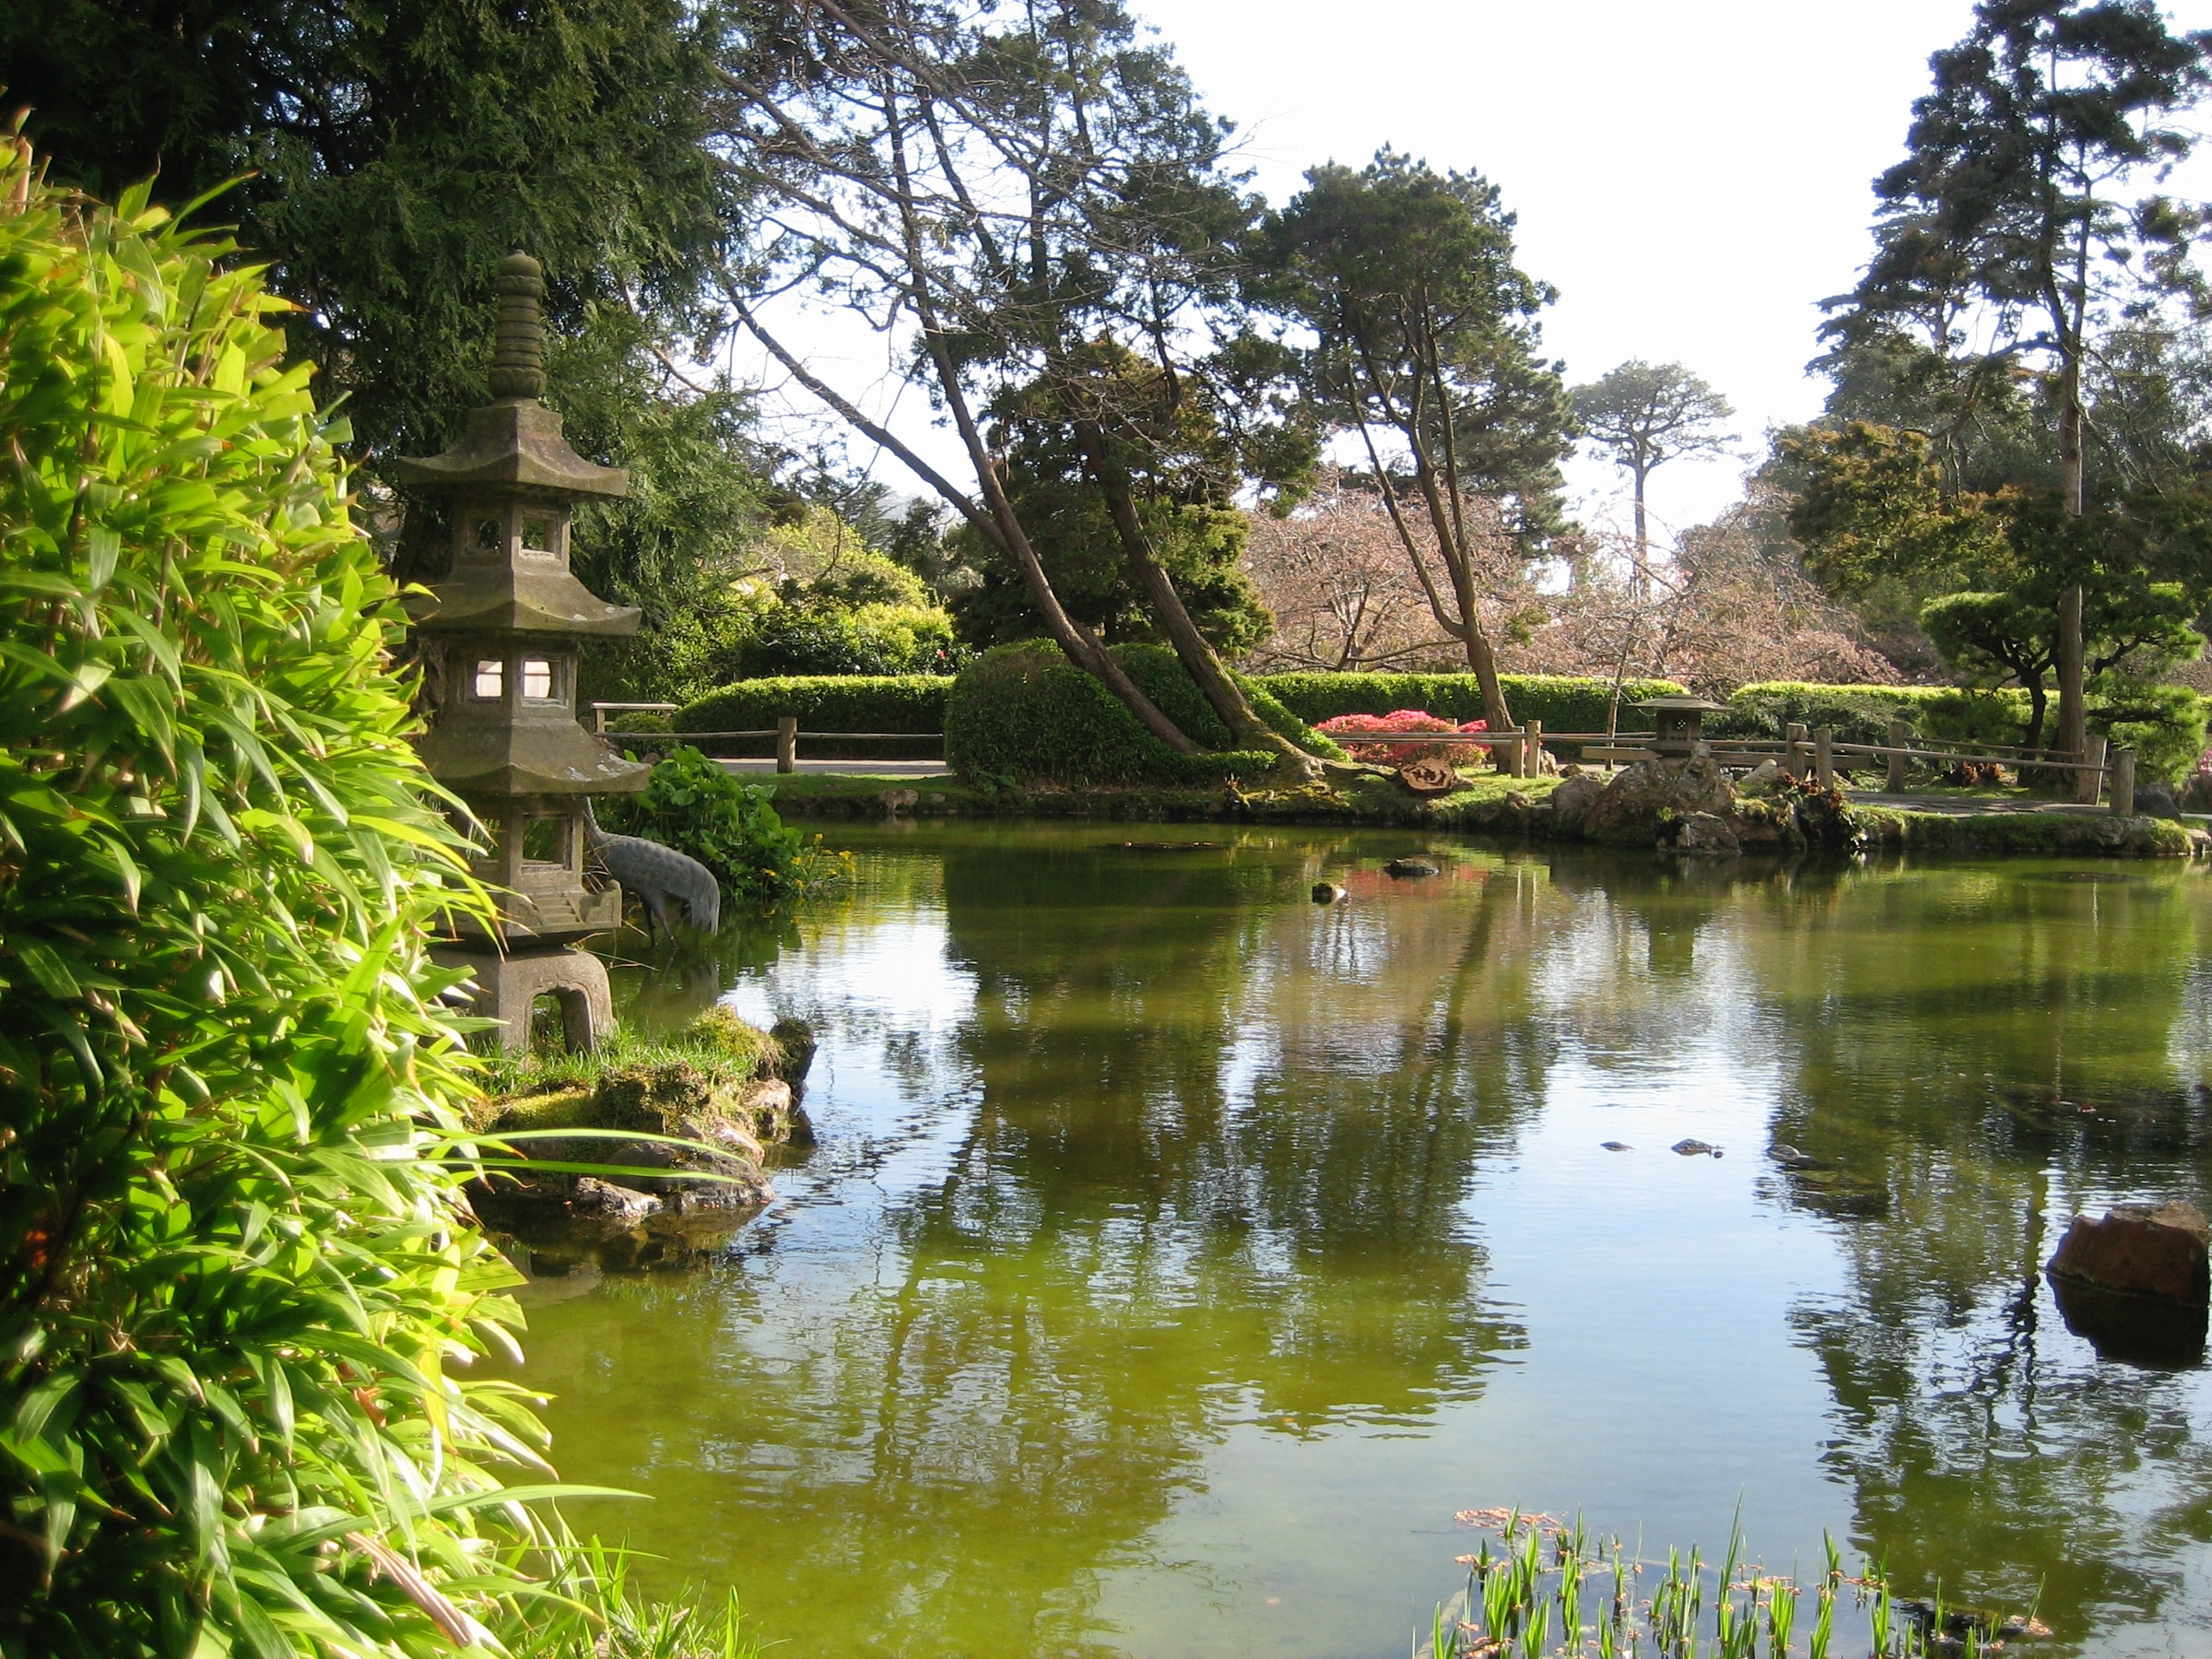 A view of the Japanese Garden